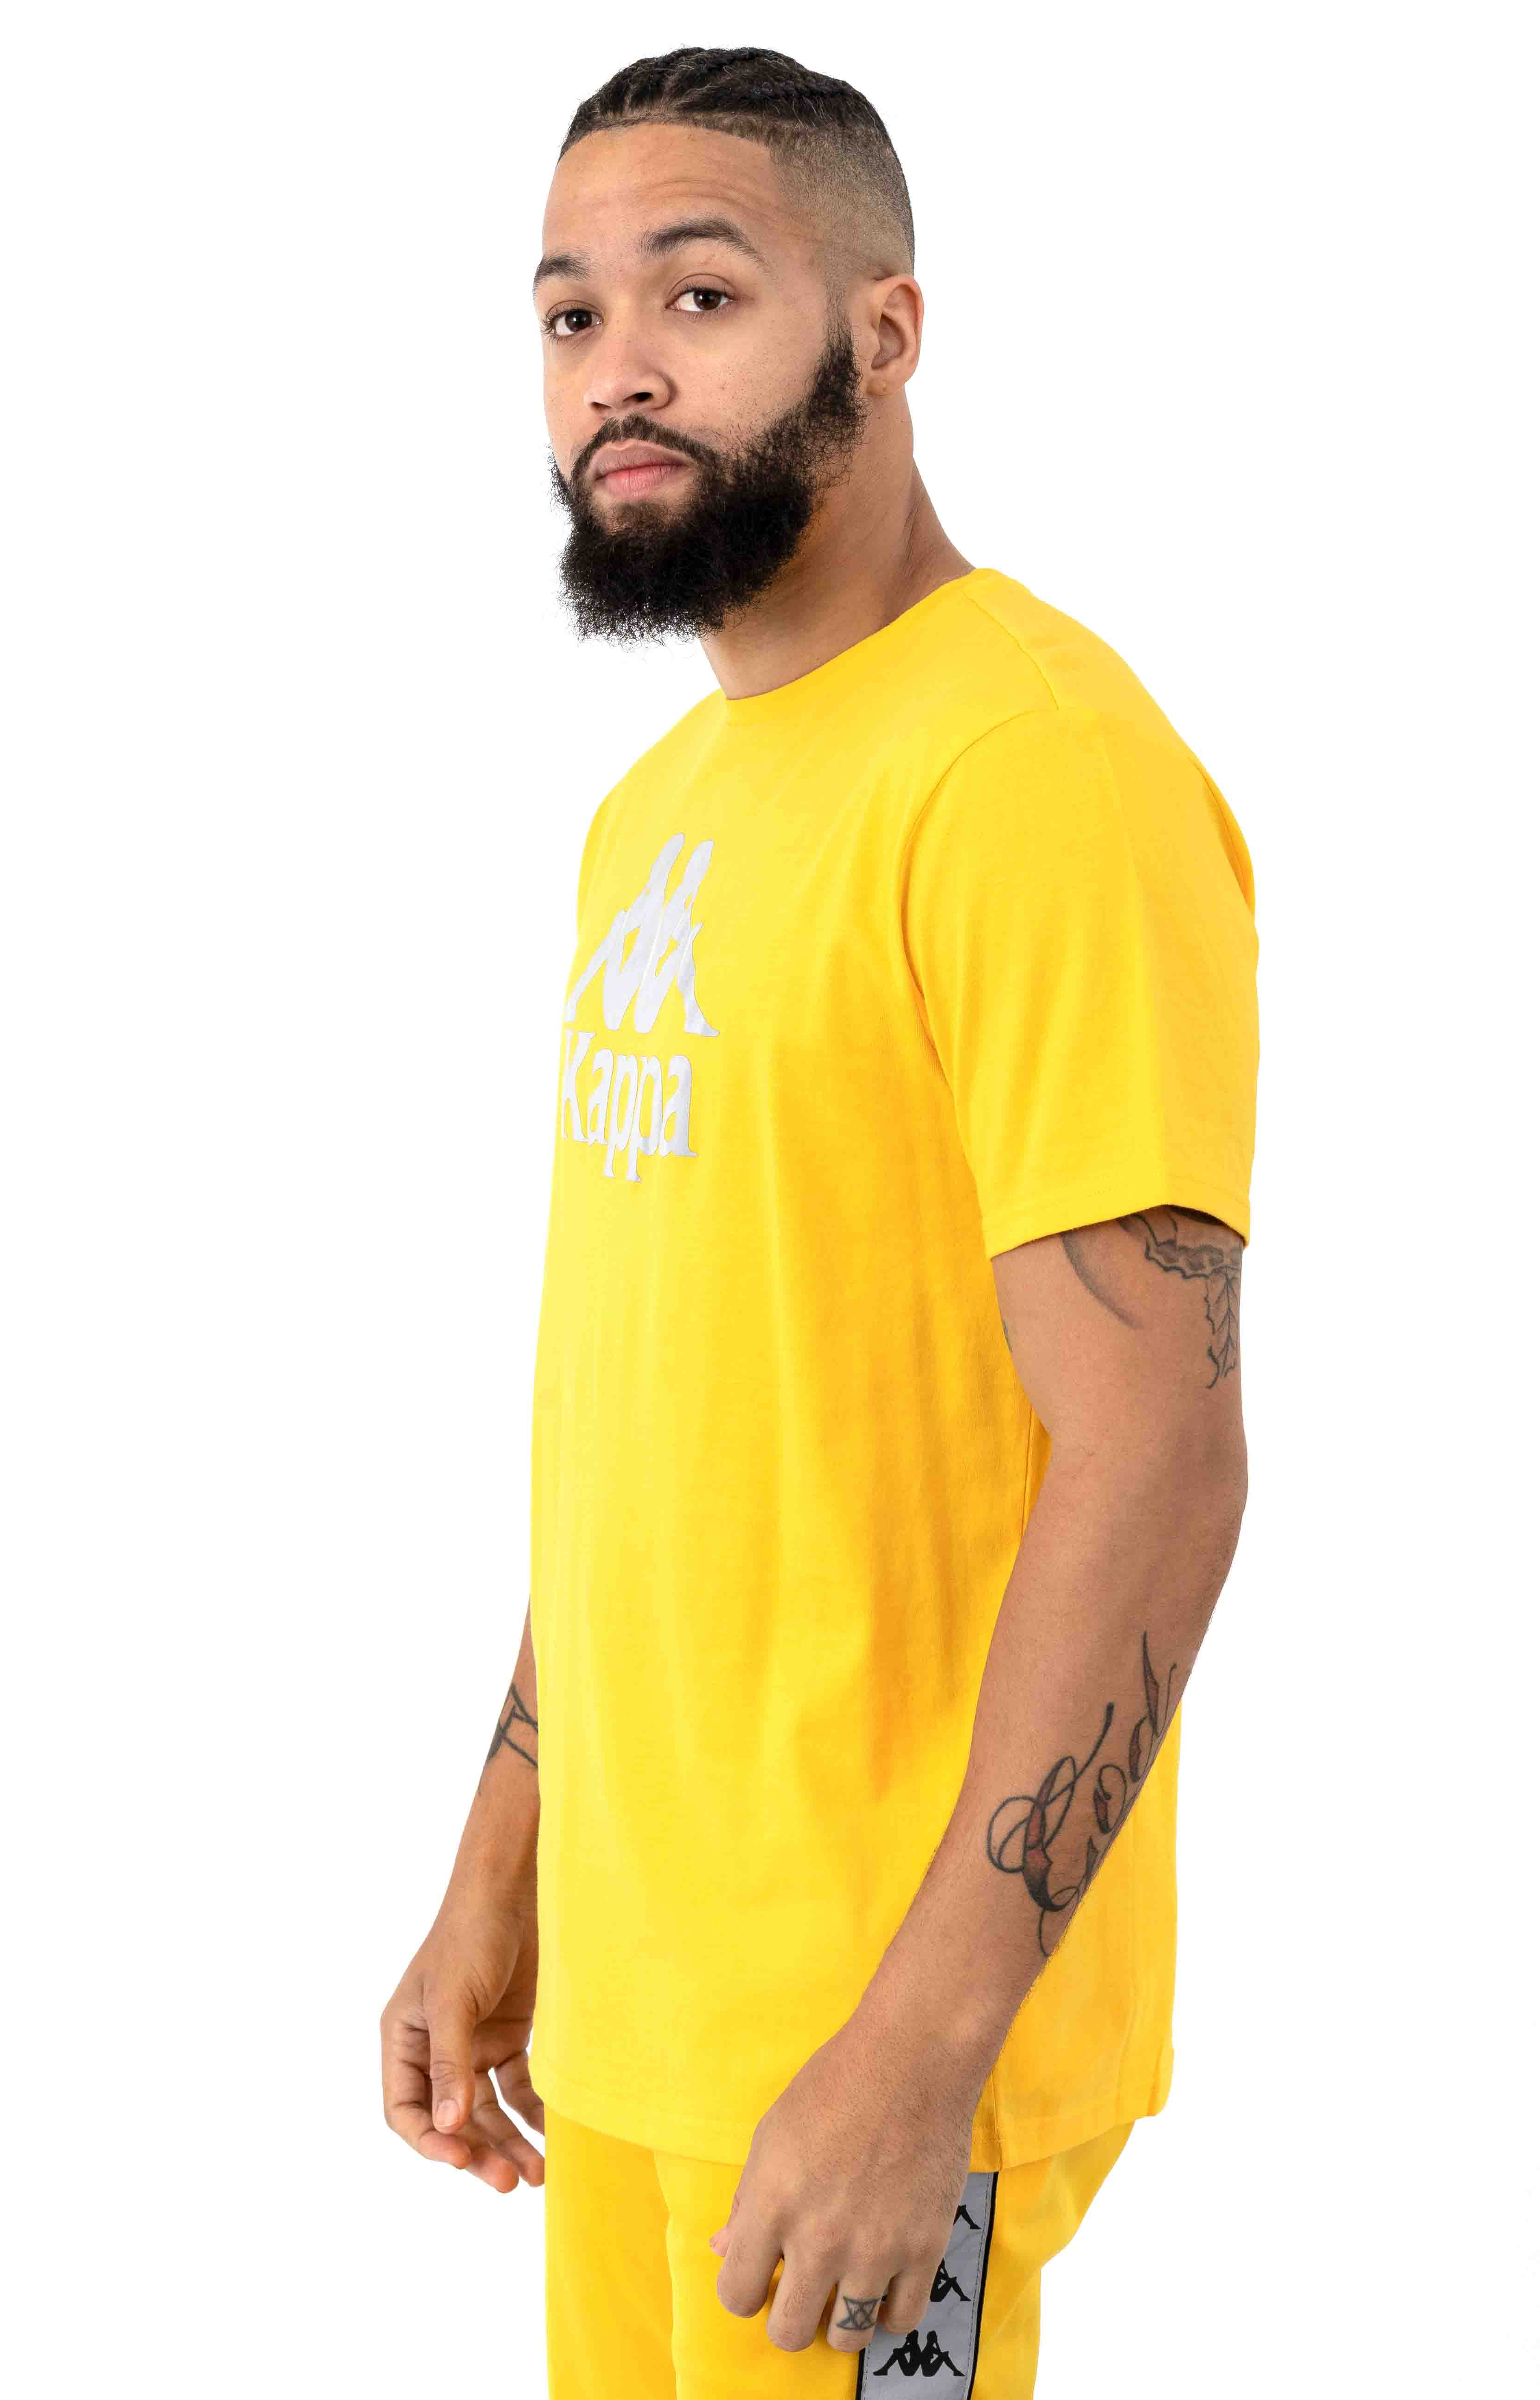 222 Authentic Dris T-Shirt - Yellow/Grey 2